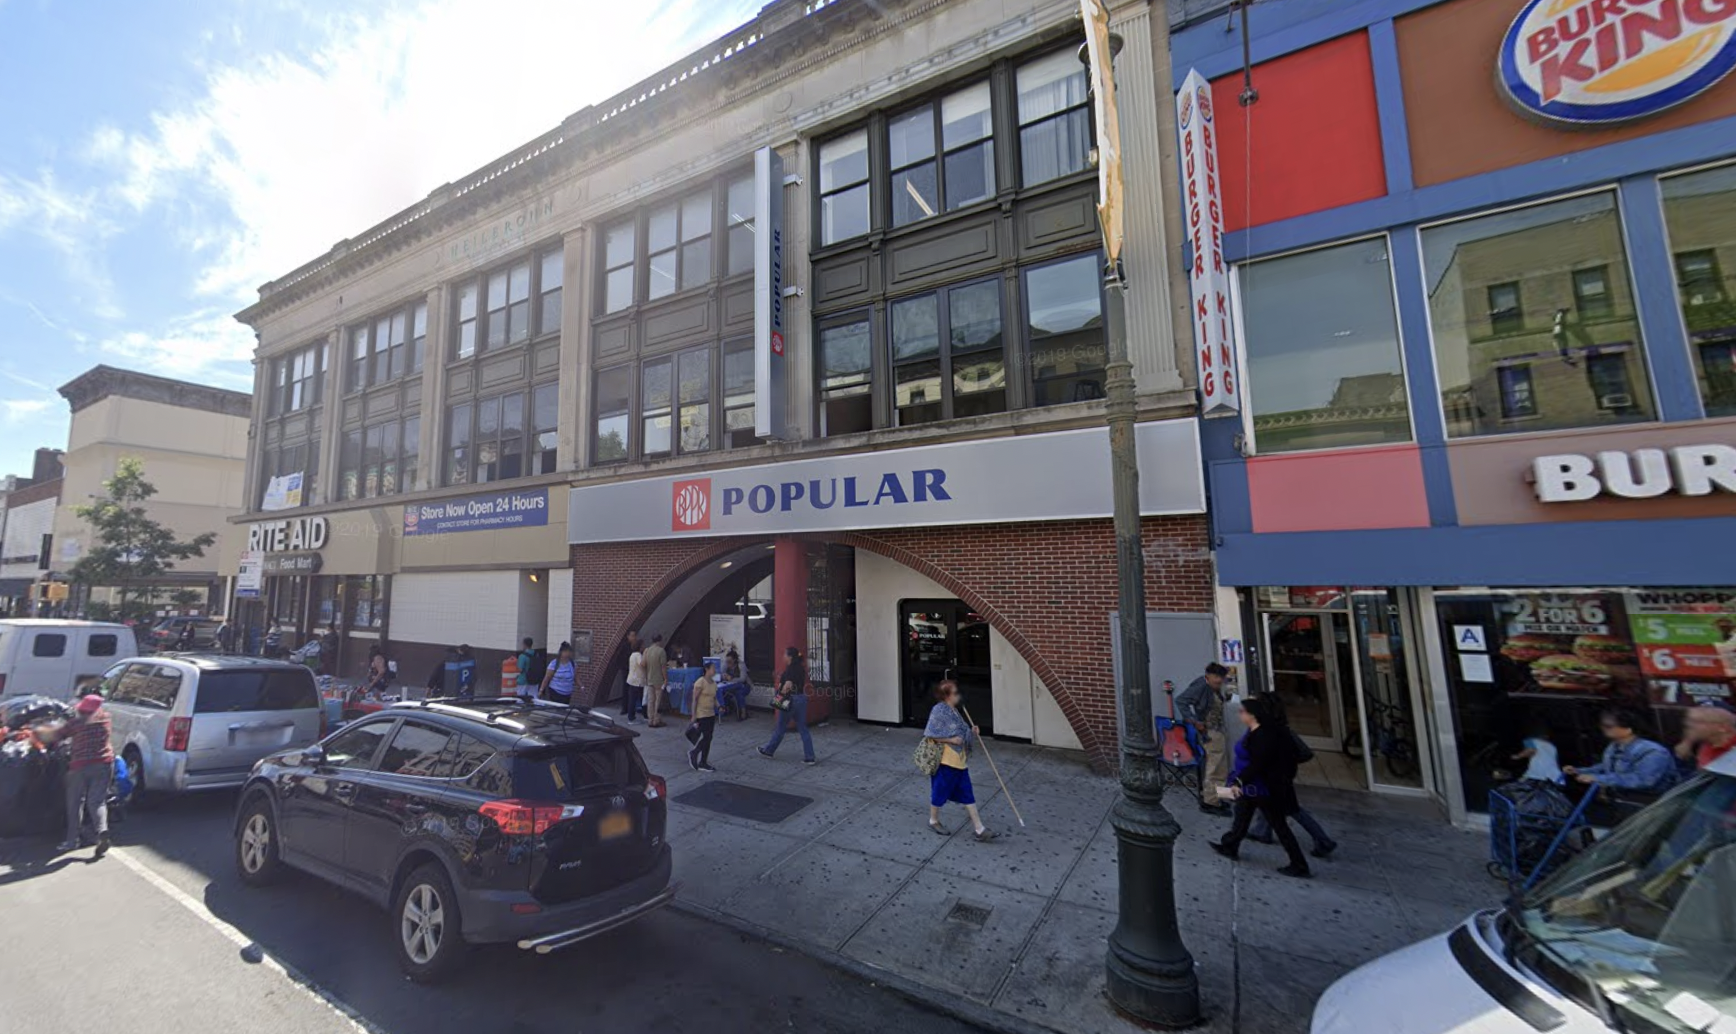 Sunset Park Bank Seeks Approval for Millions in Subsidized Deposits for Increased Financial Services